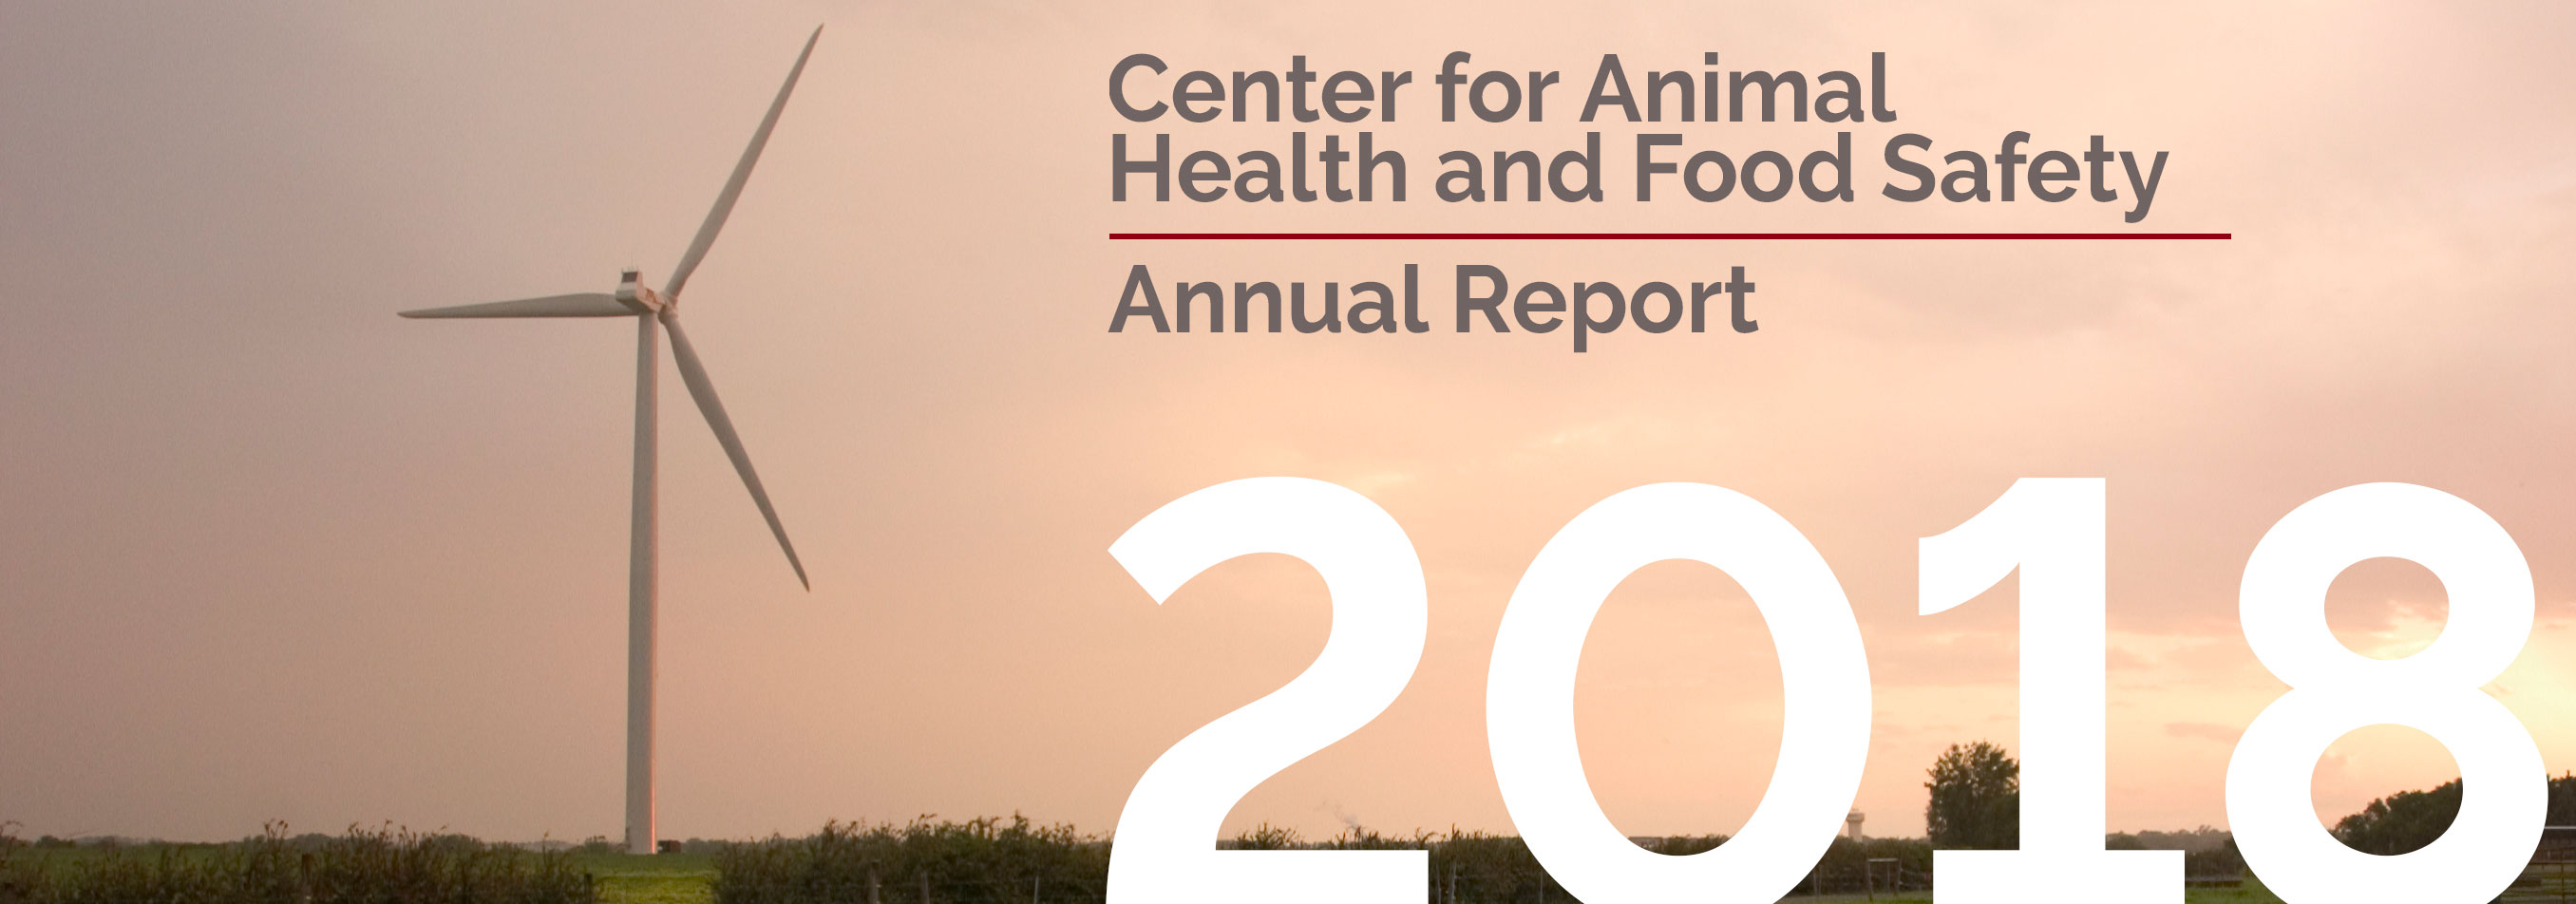 Center for Animal Health and Food Safety Annual Report 2019